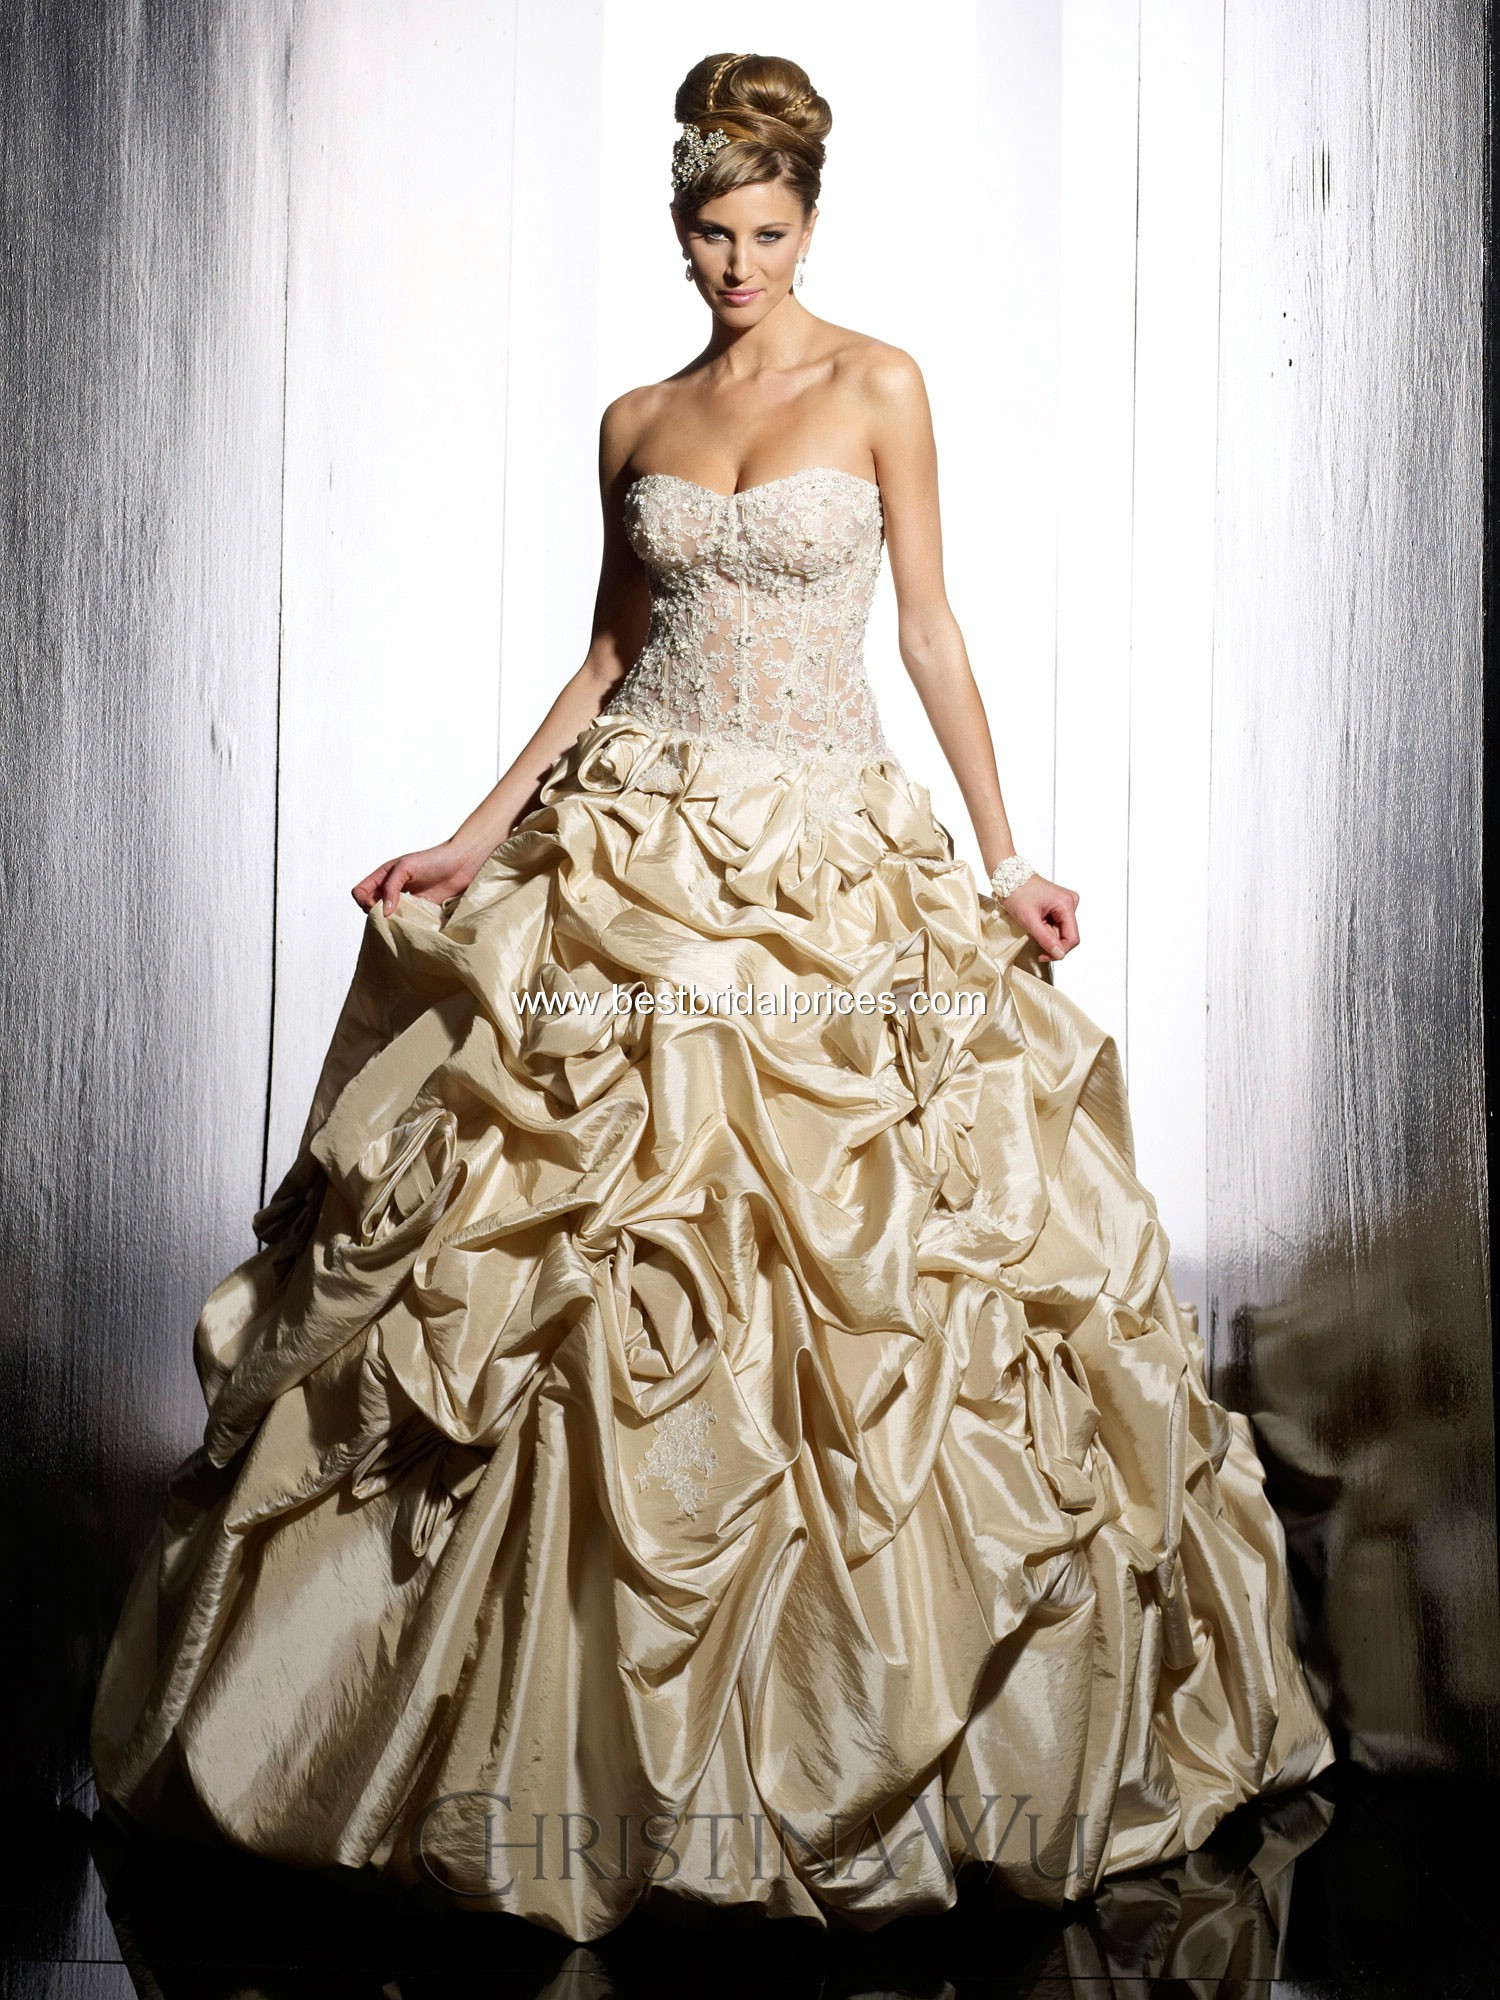 Top Ten Wedding Dress Style in 2013 – Gold | Wedding ...